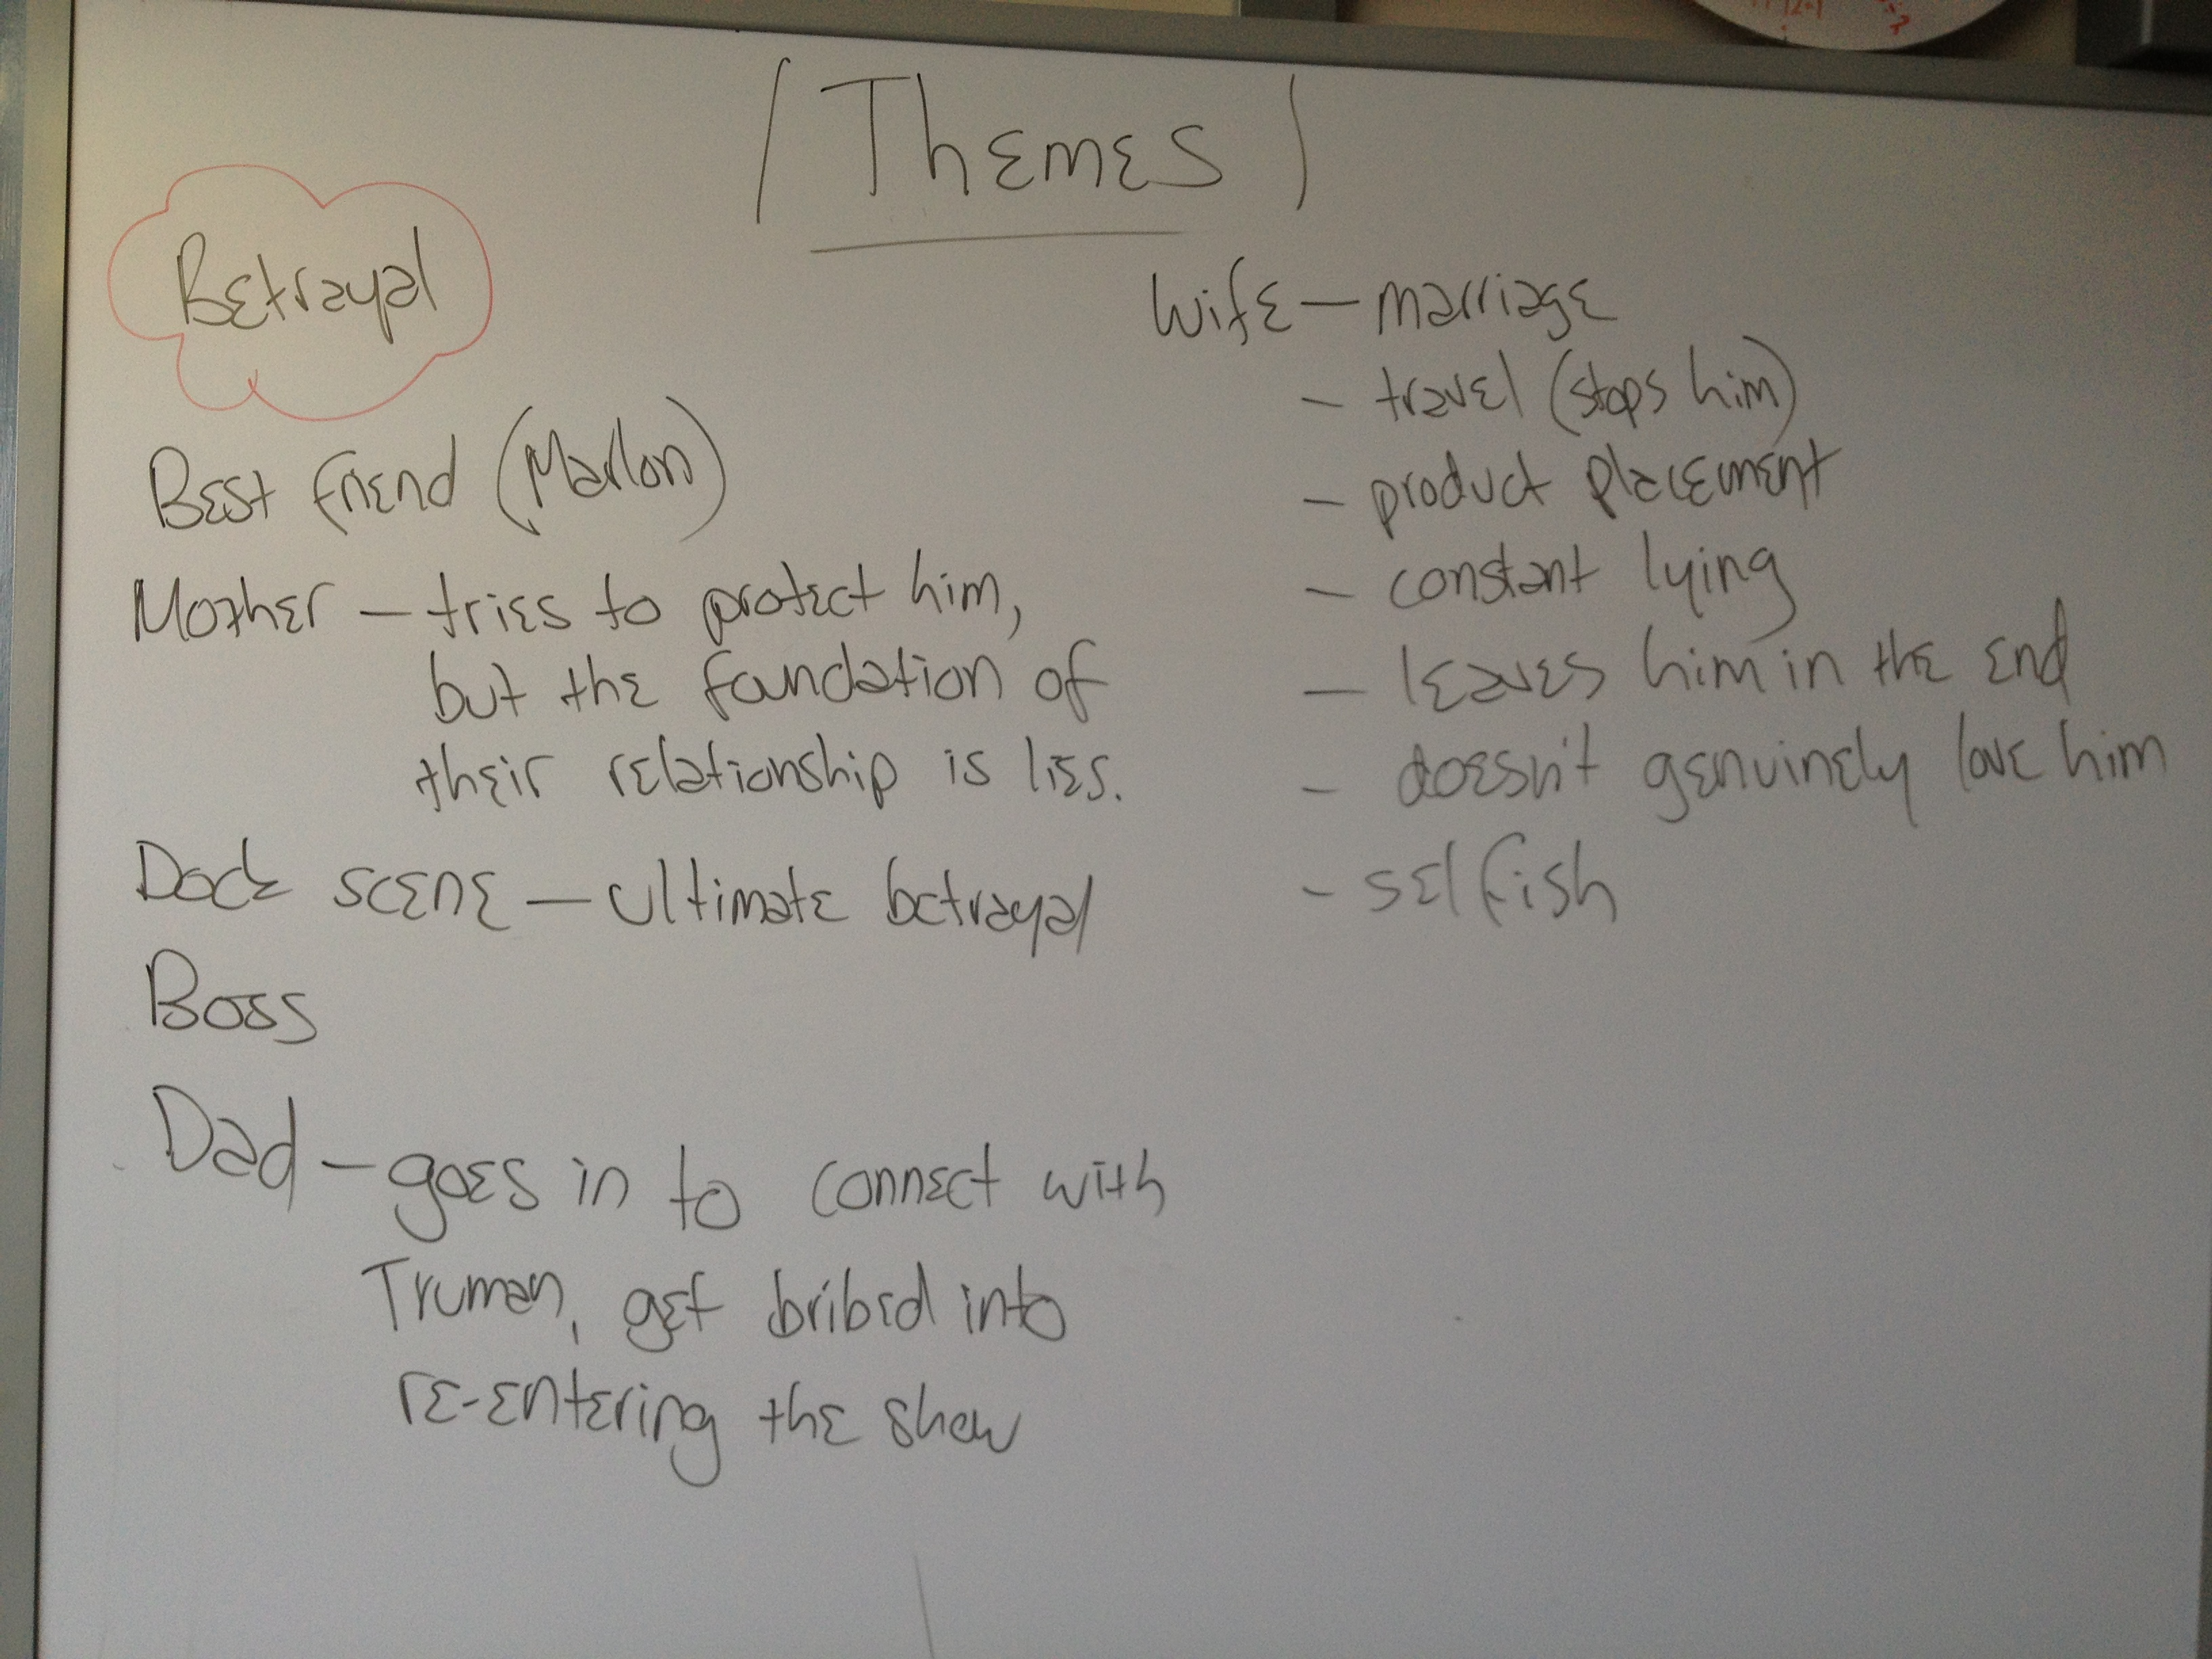 the truman show essay the truman show essay university media the truman show themes englishhere is the stuff we did on the board the other day